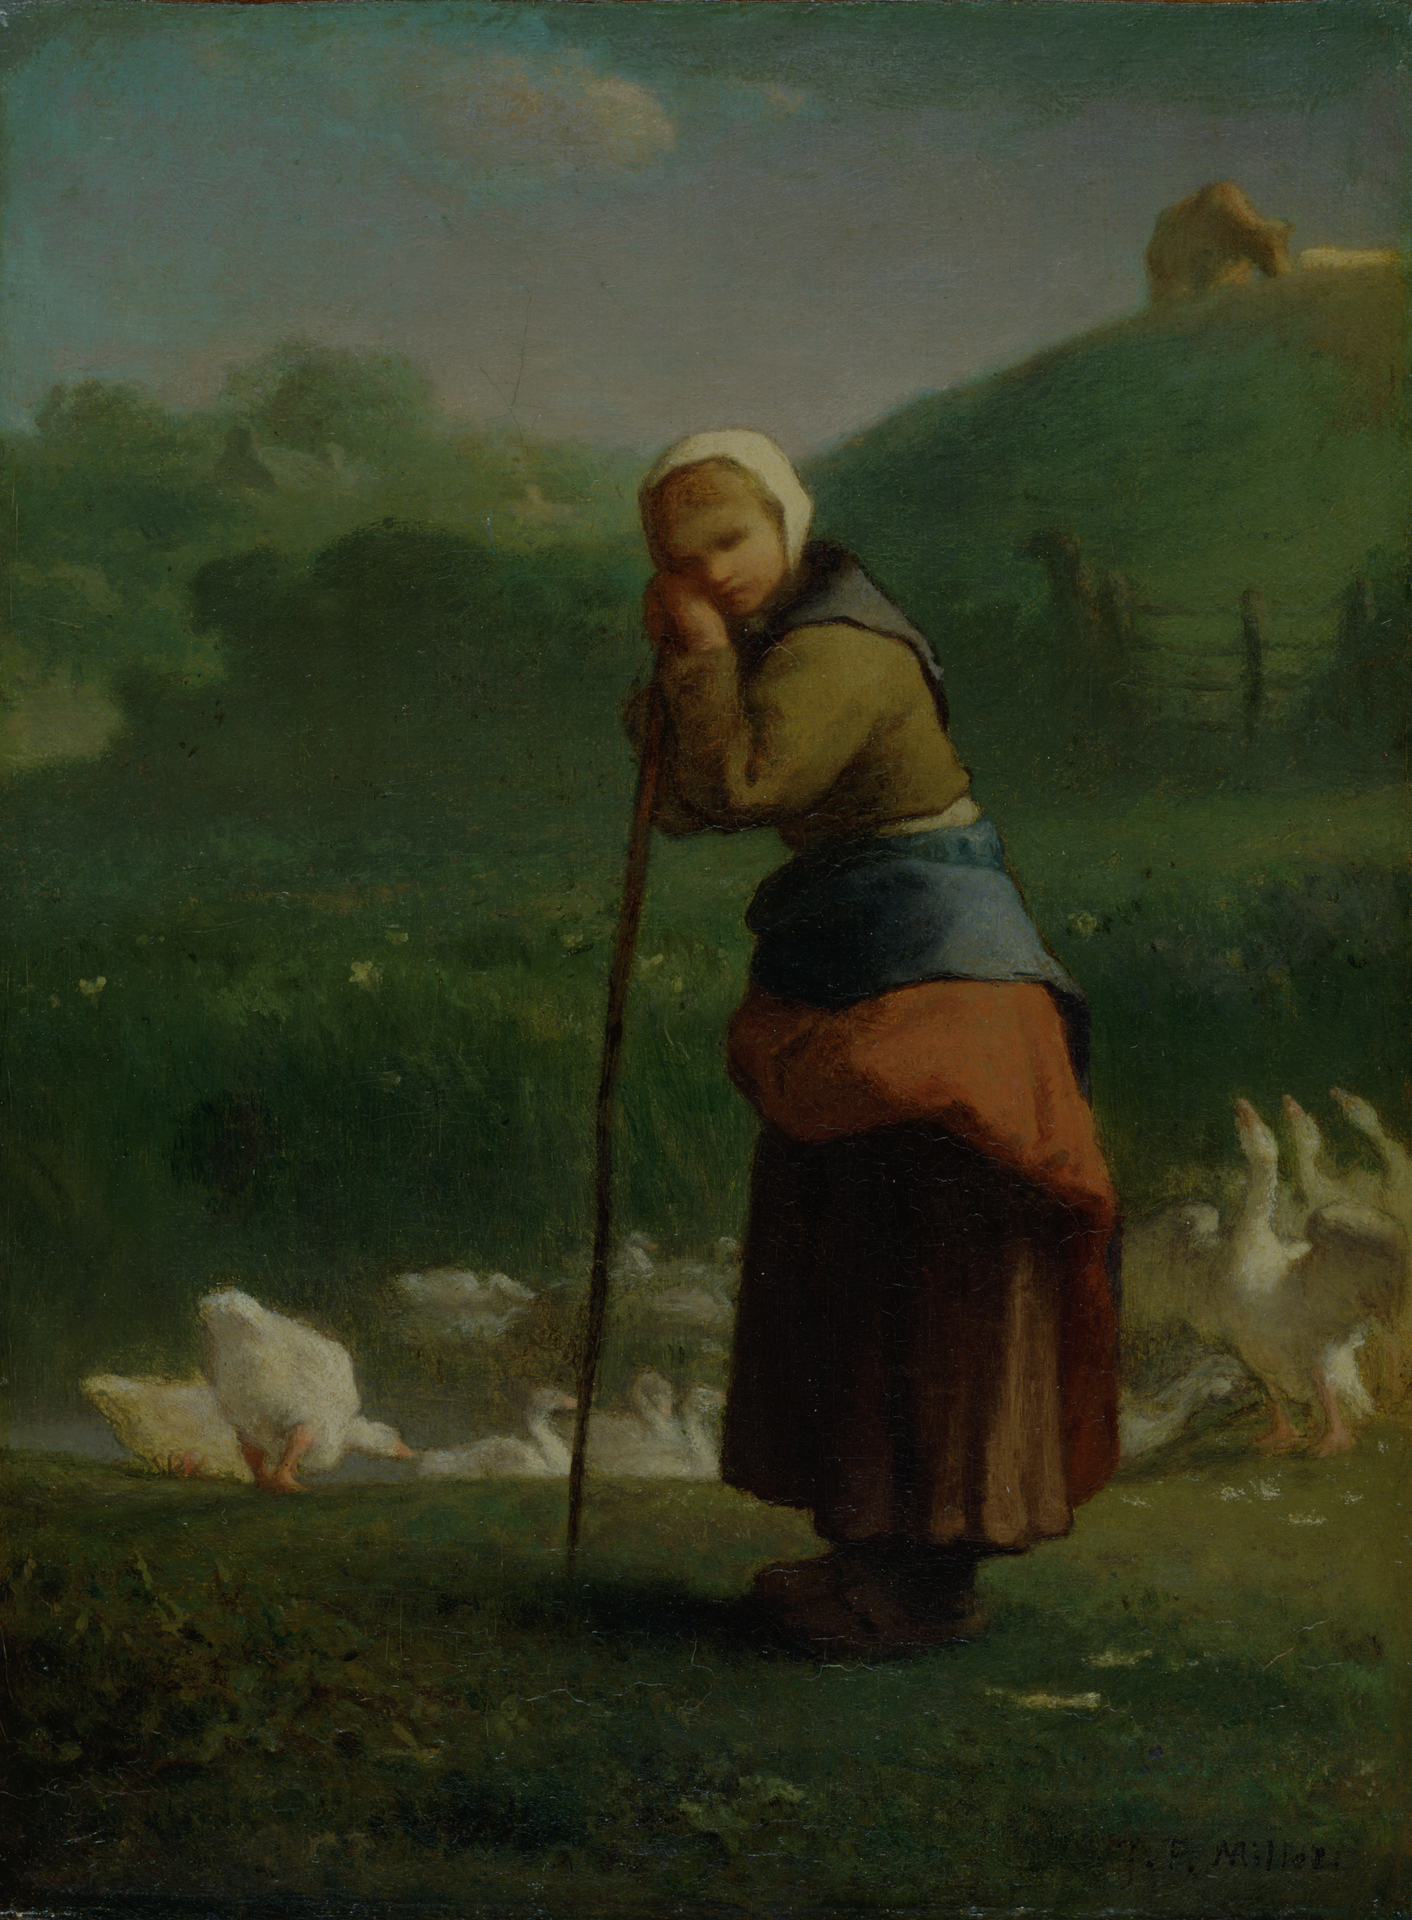 An image of artist Jean-Francois Millet's painting, titled 'The Goose Girl at Gruchy'